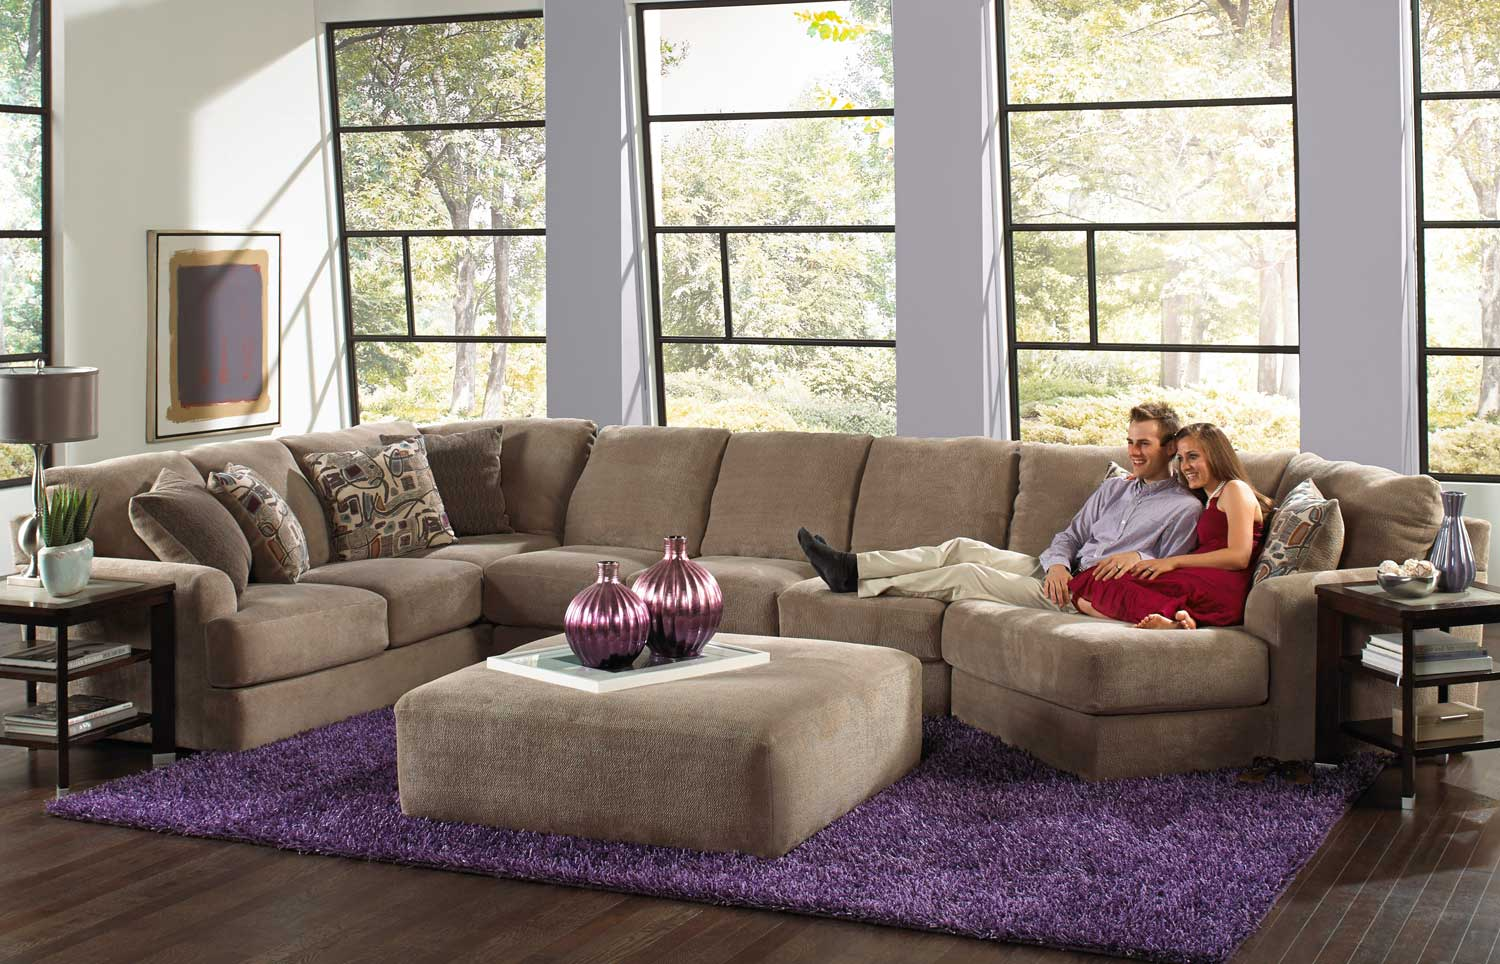 Jackson malibu large chaise sectional with ottoman set b jf 3239 set 2 taupe at for Living room furniture configurations